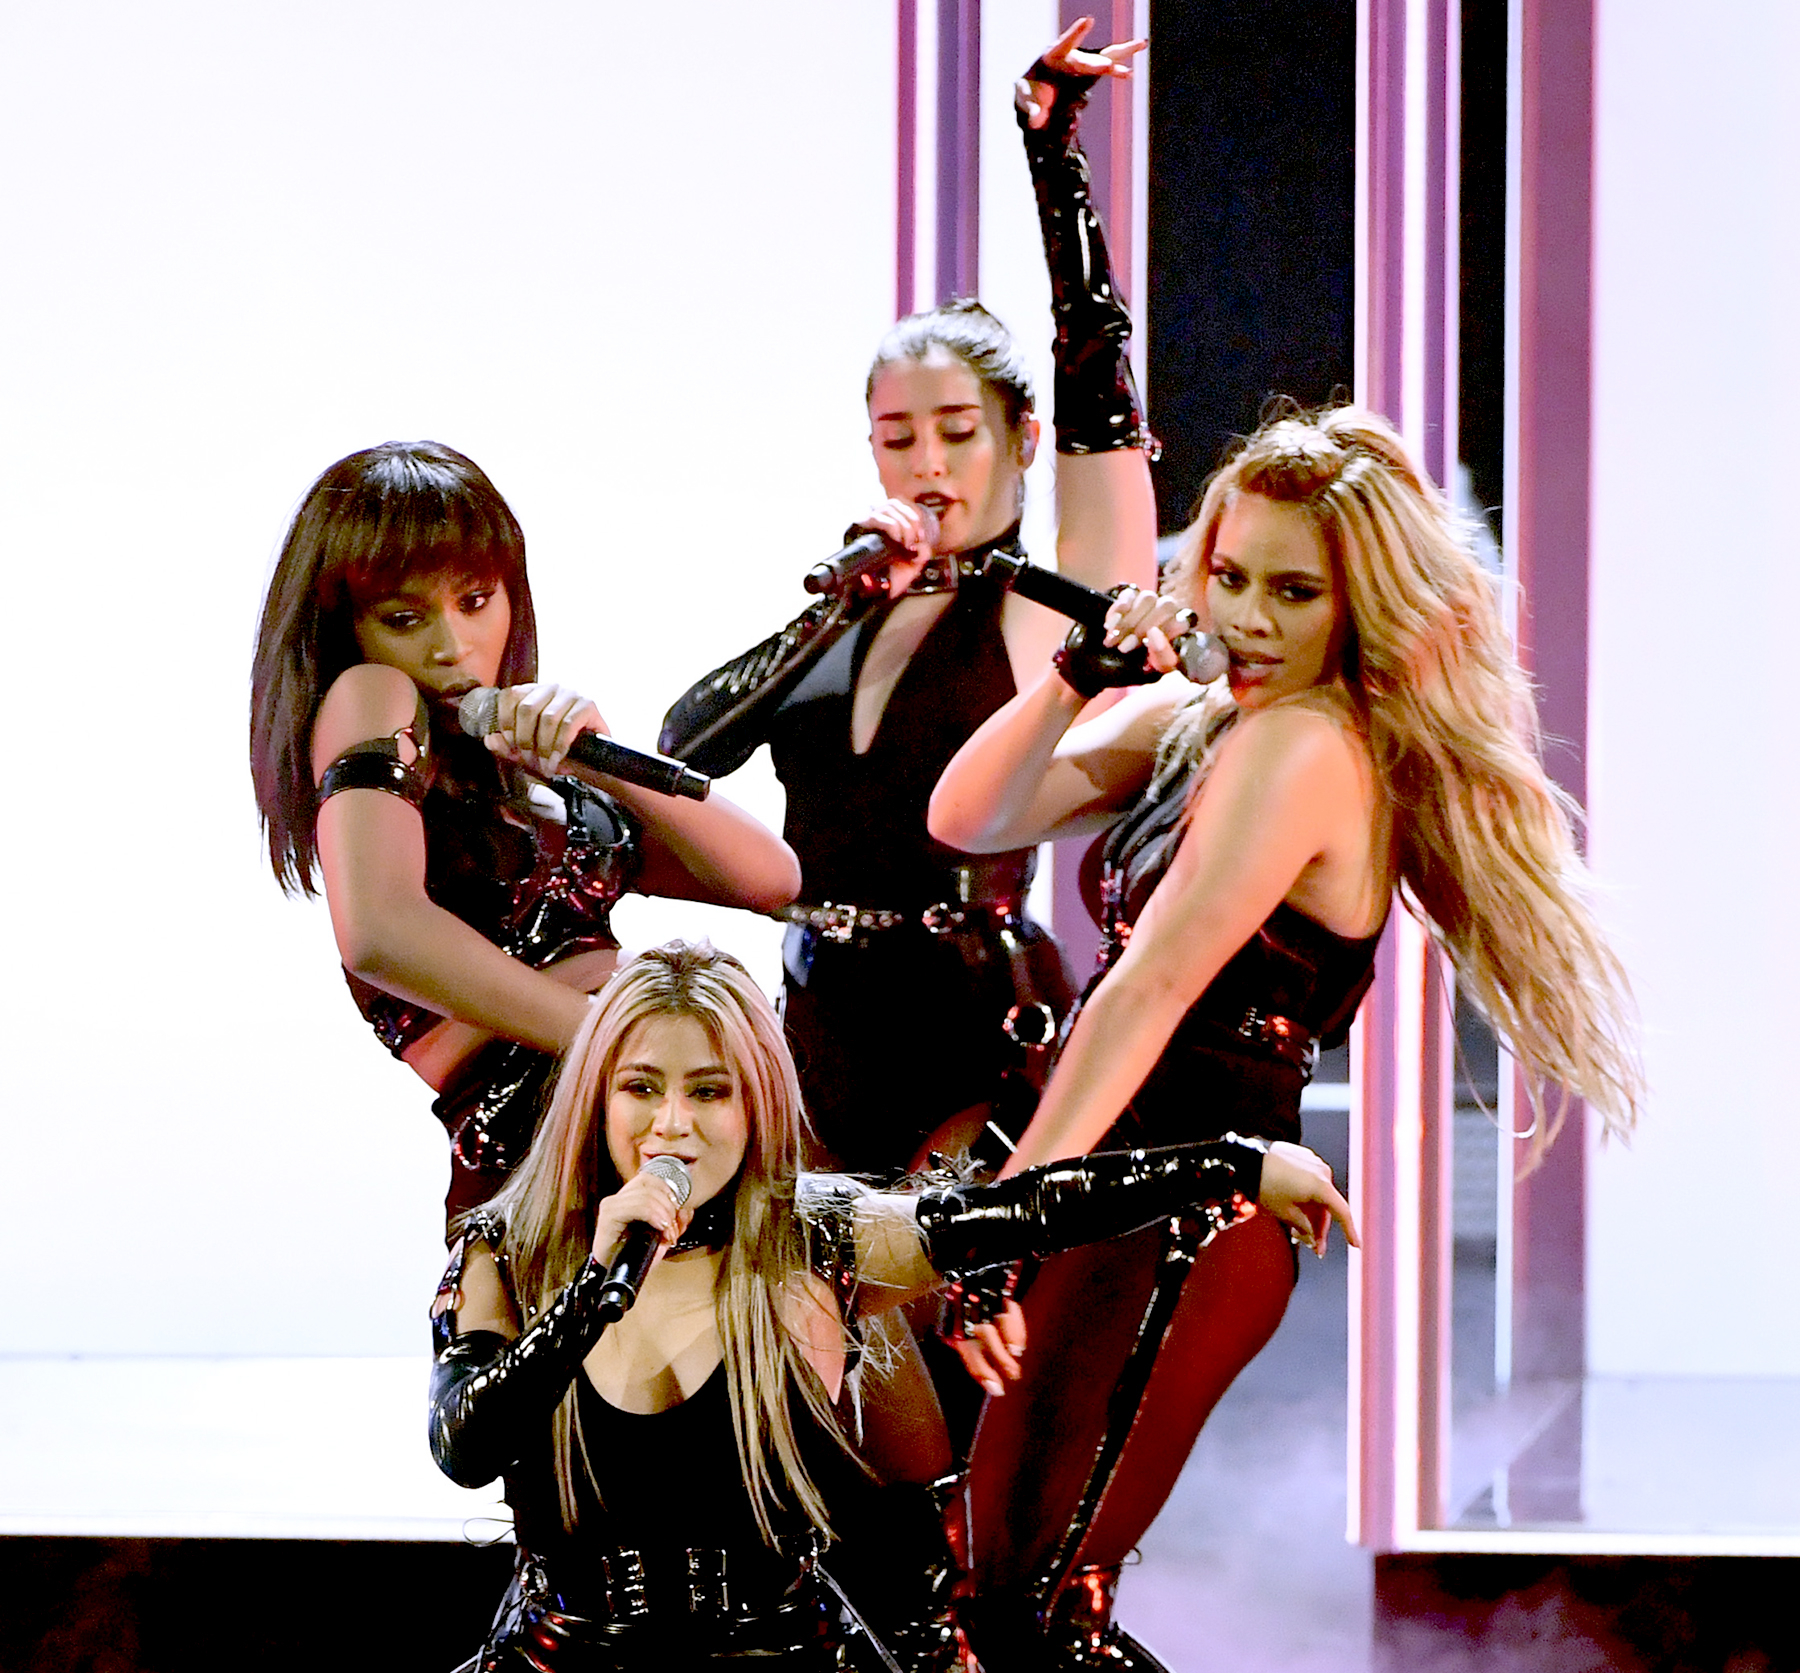 Ally Brooke, Normani Kordei, Dinah Jane, and Lauren Jauregui of Fifth Harmony perform onstage during the People's Choice Awards 2017 at Microsoft Theater on January 18, 2017 in Los Angeles, California.